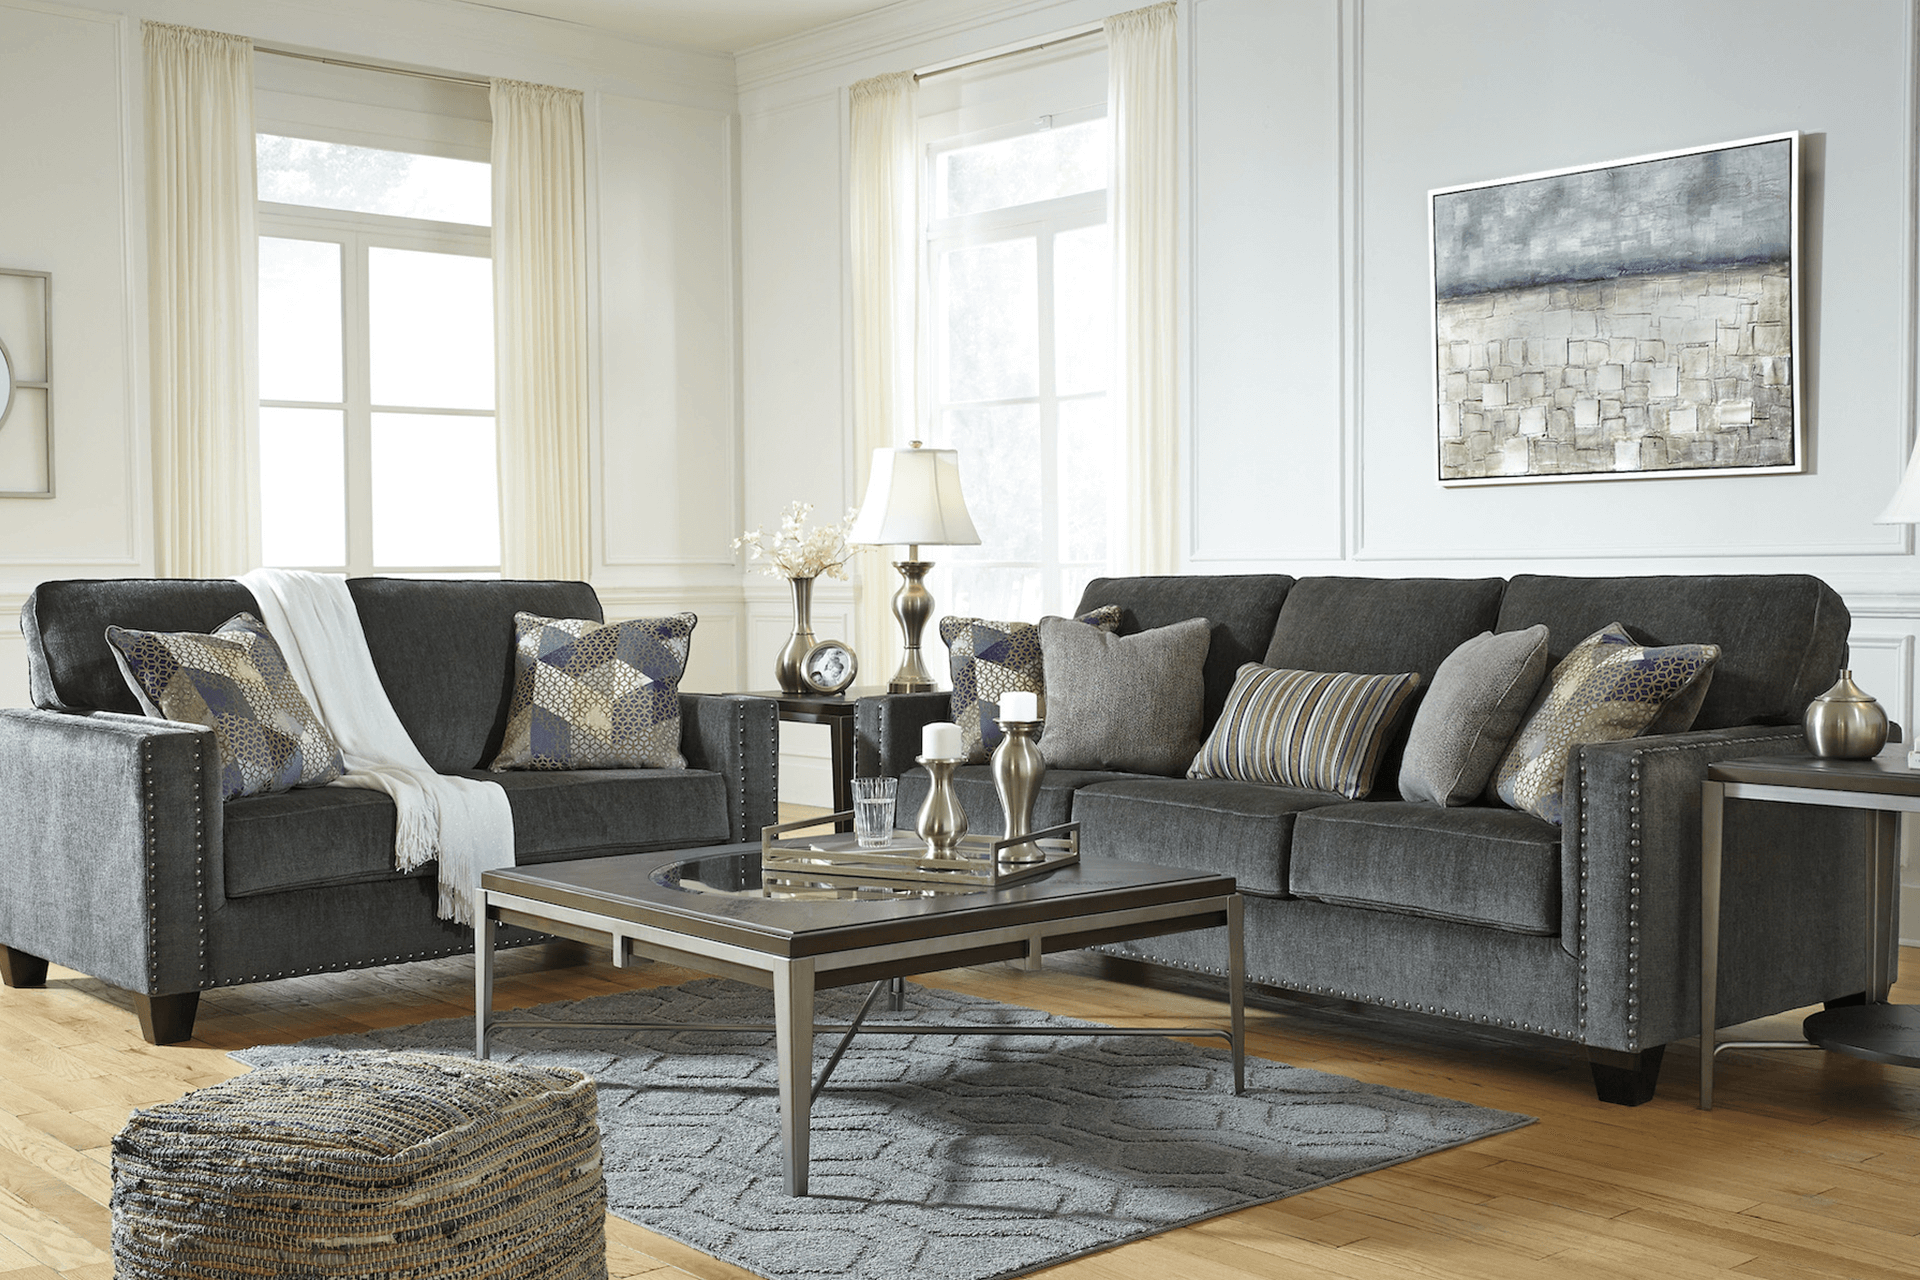 Atlantic_Furniture-Sofa_Sets-43001_w_T710_hi-res